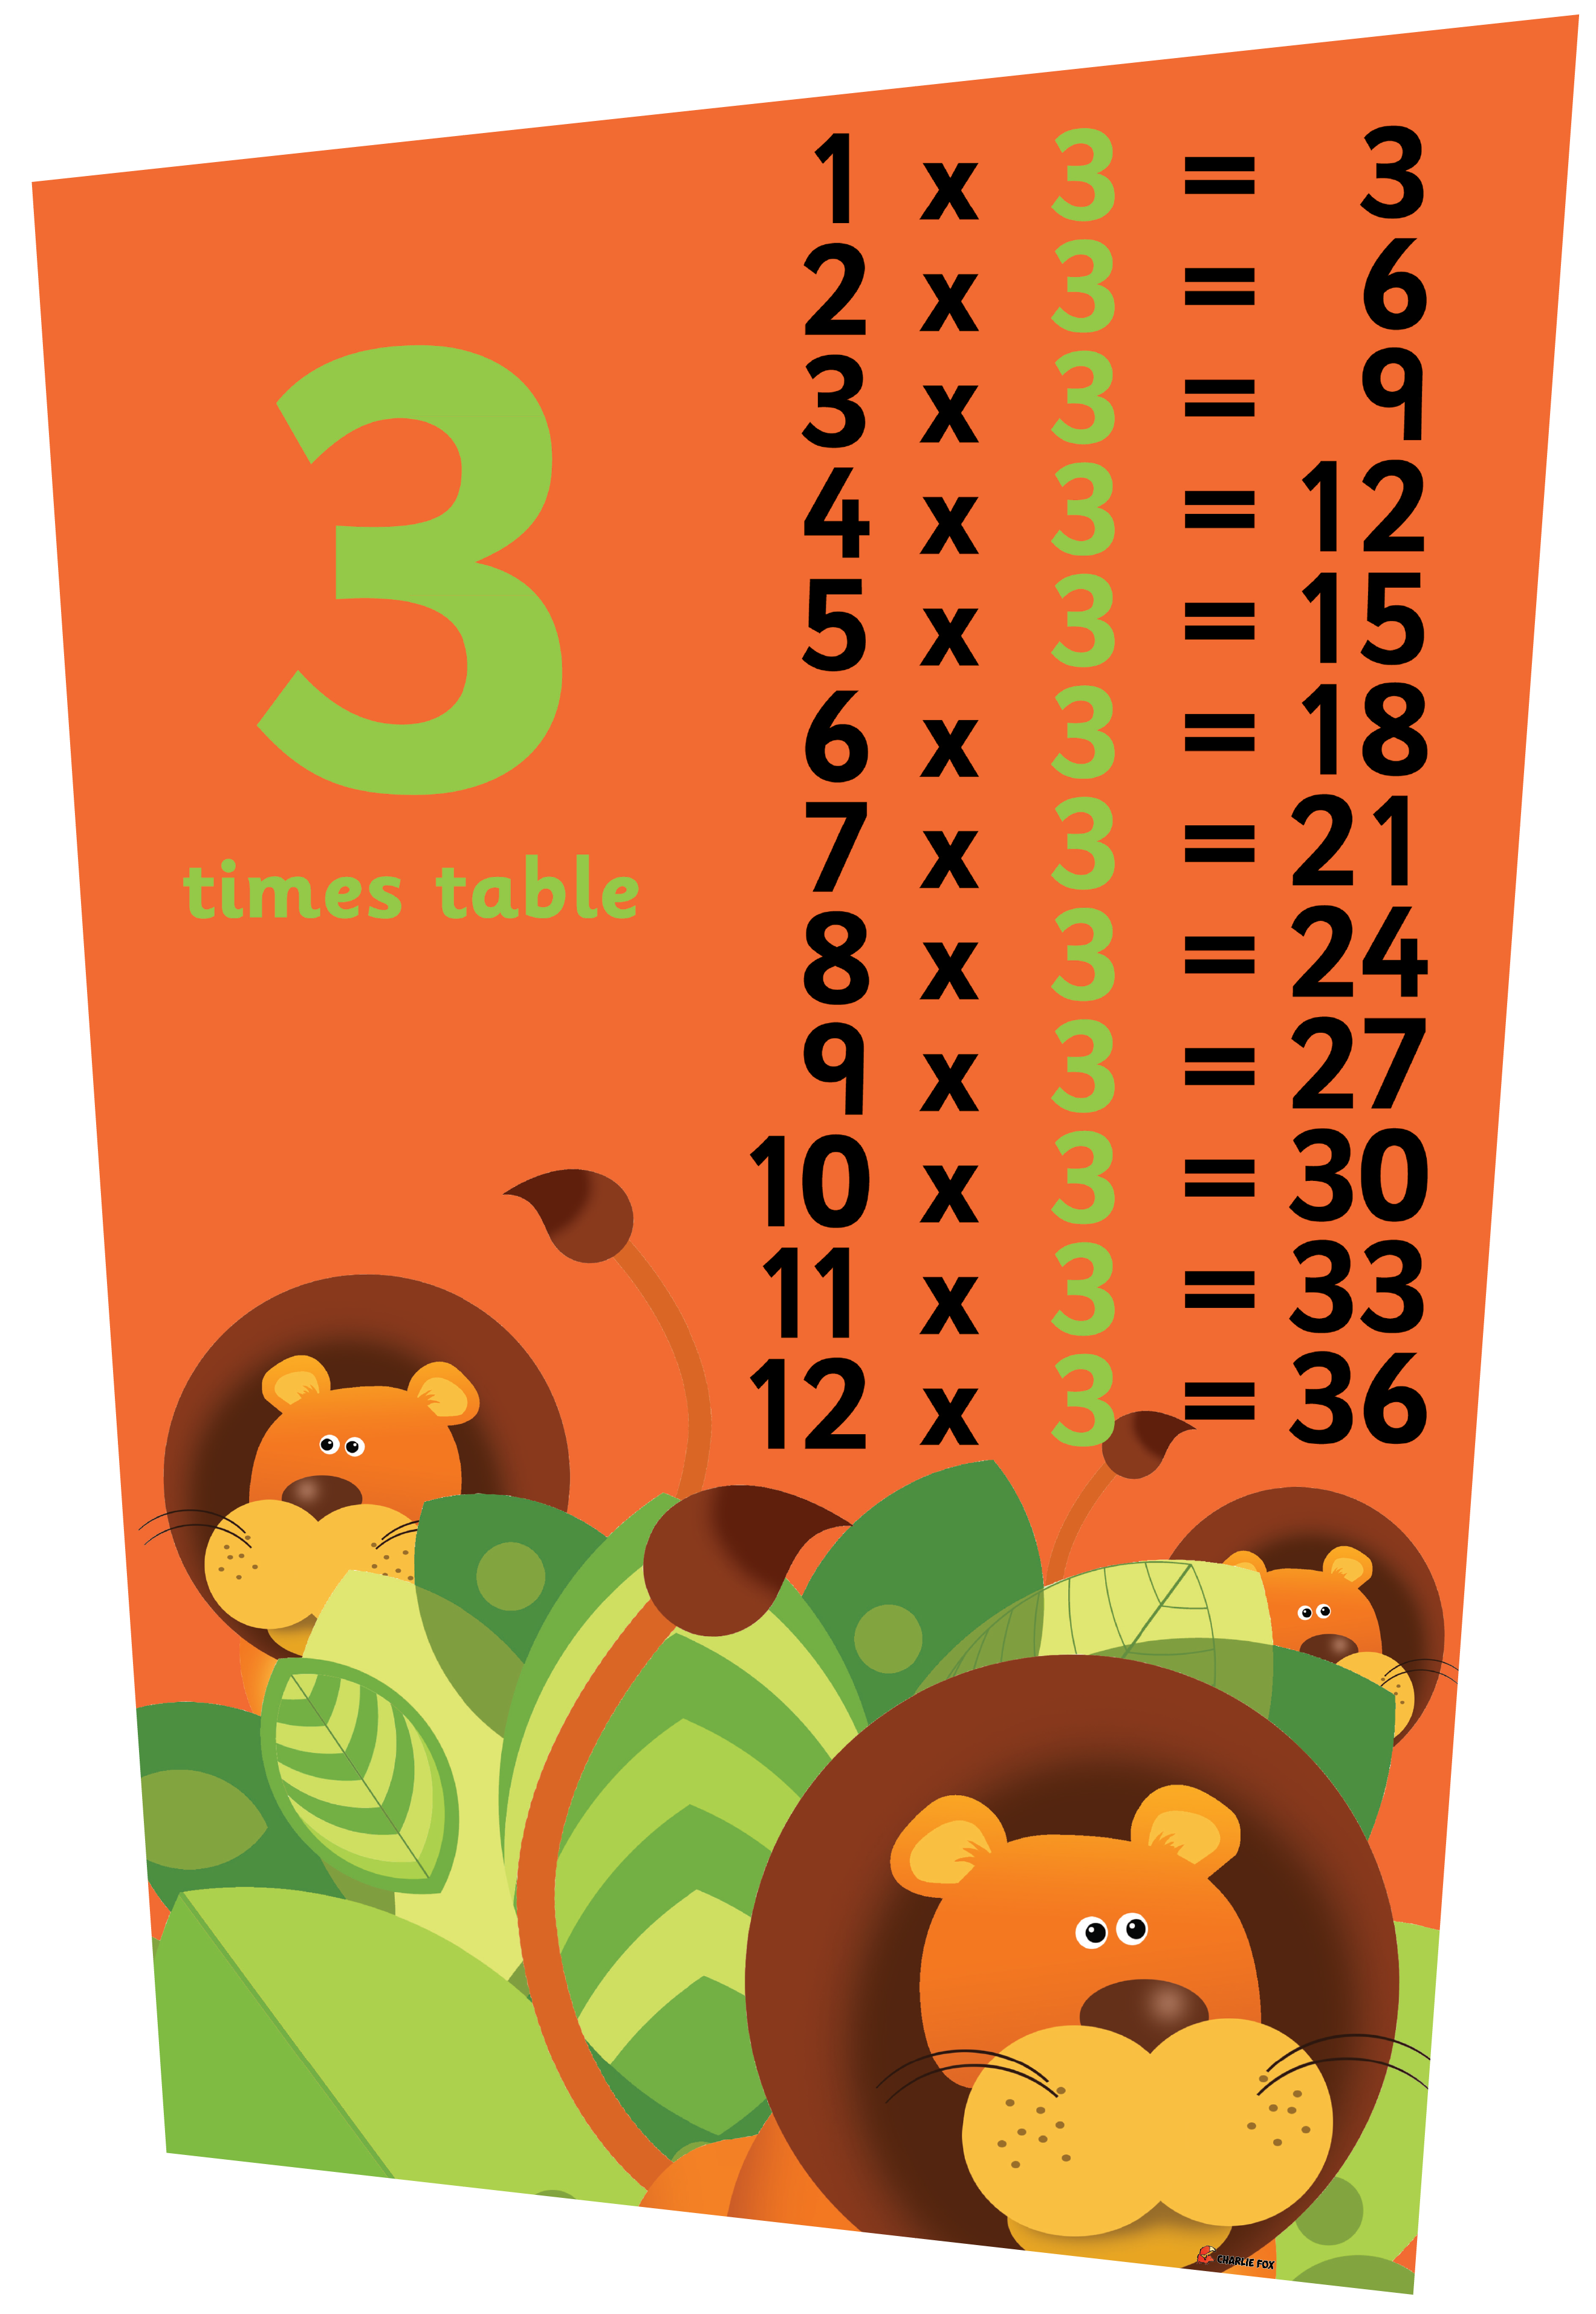 Ks1 Times Tables Set Of 4 Signs. Bladder Infection Signs Of Stroke. Roman Signs. Srt4 Decals. Controversial Murals. Red Orange Banners. Cellphone Signs Of Stroke. Driving Signs Of Stroke. Silverado Bed Decals